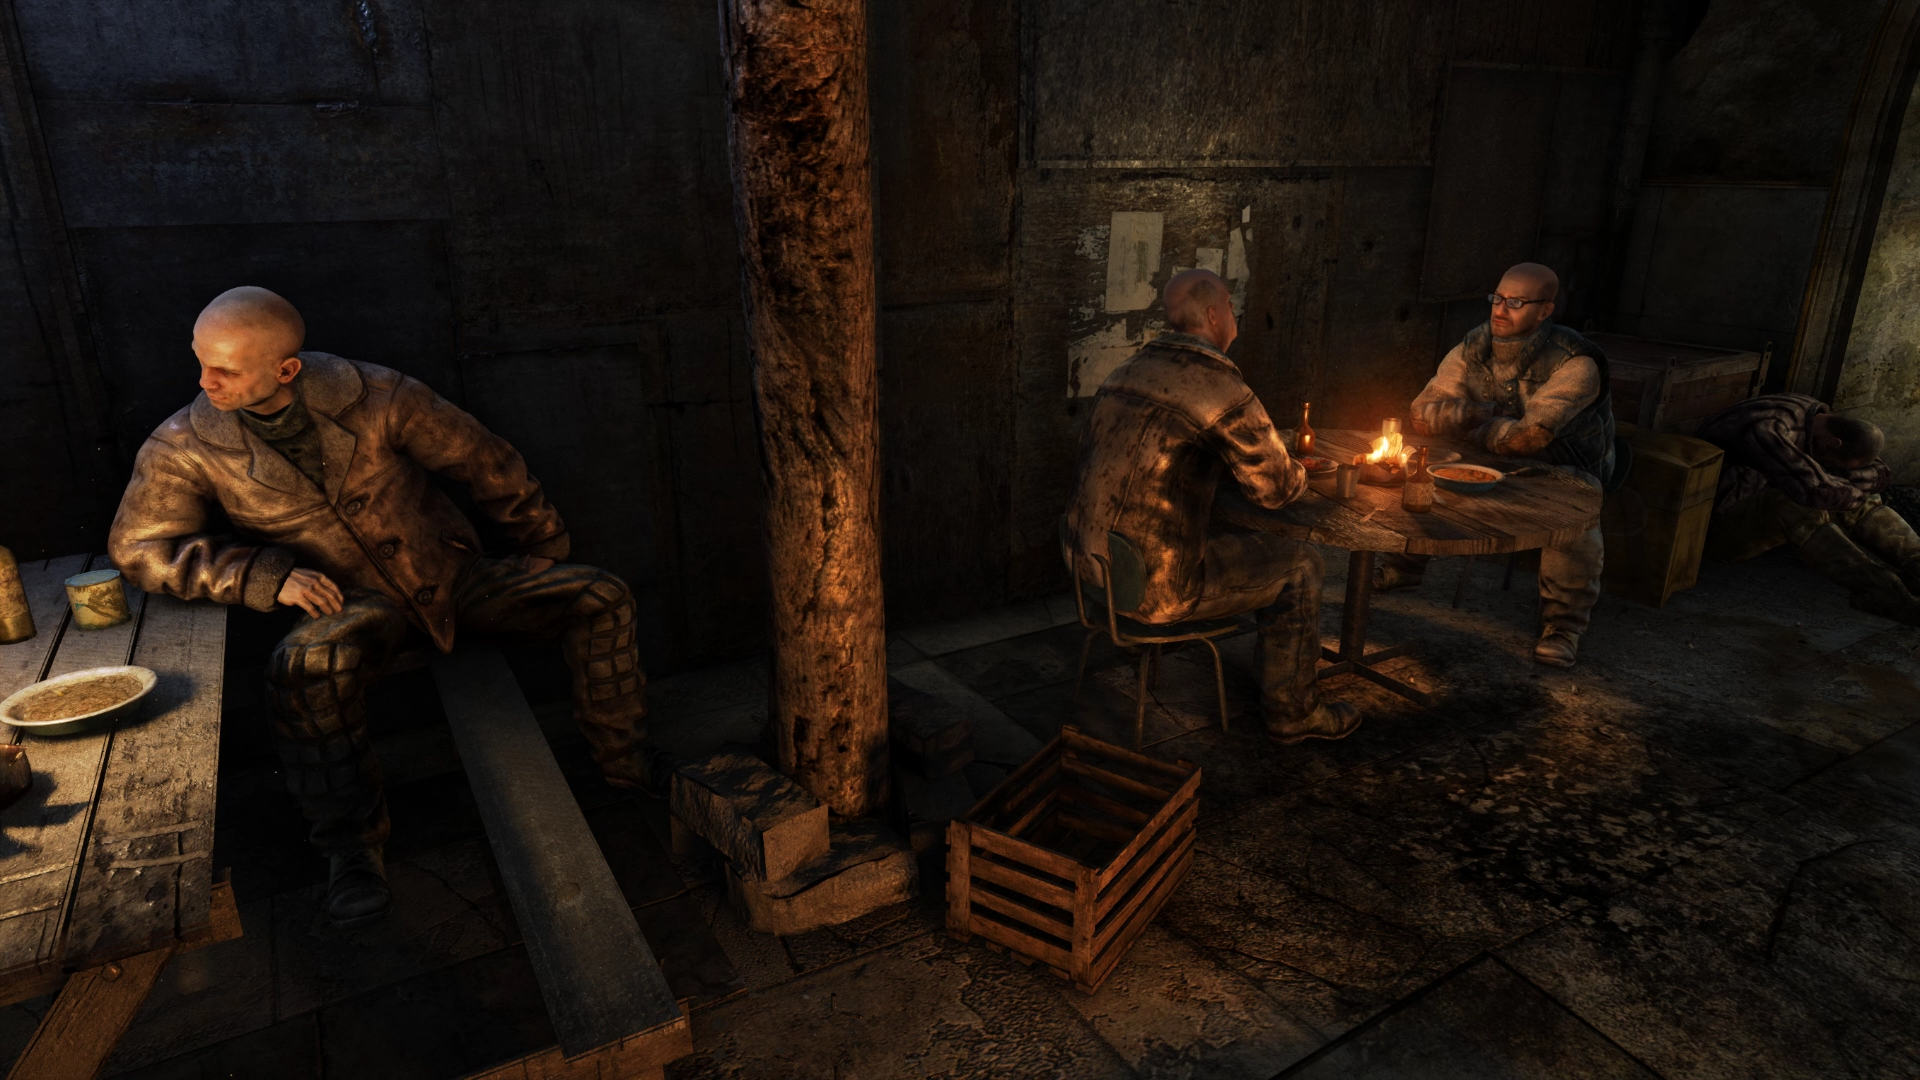 Media asset in full size related to 3dfxzone.it news item entitled as follows: YouTube Gaming Video: Metro 2033 Redux   4A Engine   Full HD Gameplay Footage   Image Name: news30792_Metro-2033-Redux-Screenshot_1.png